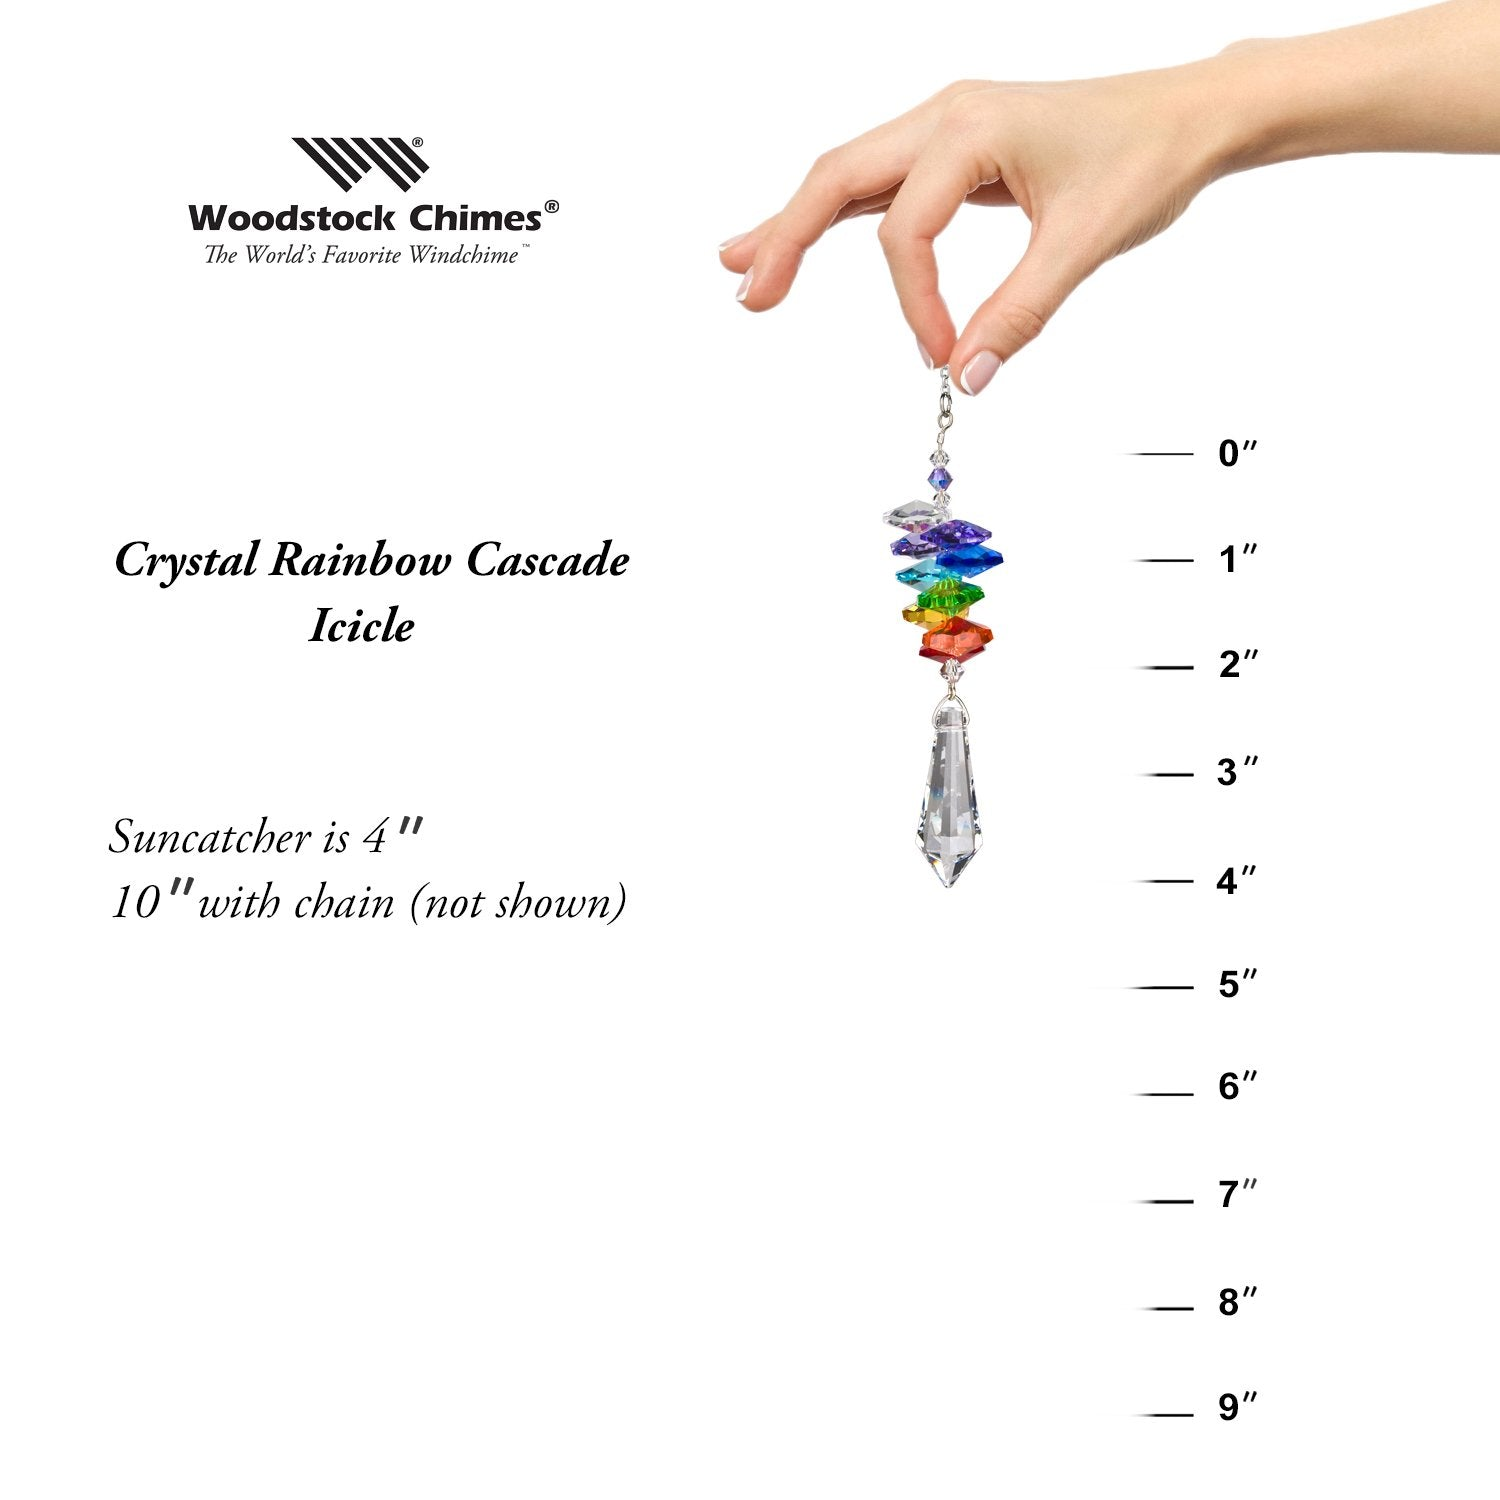 Crystal Rainbow Cascade Suncatcher - Icicle proportion image